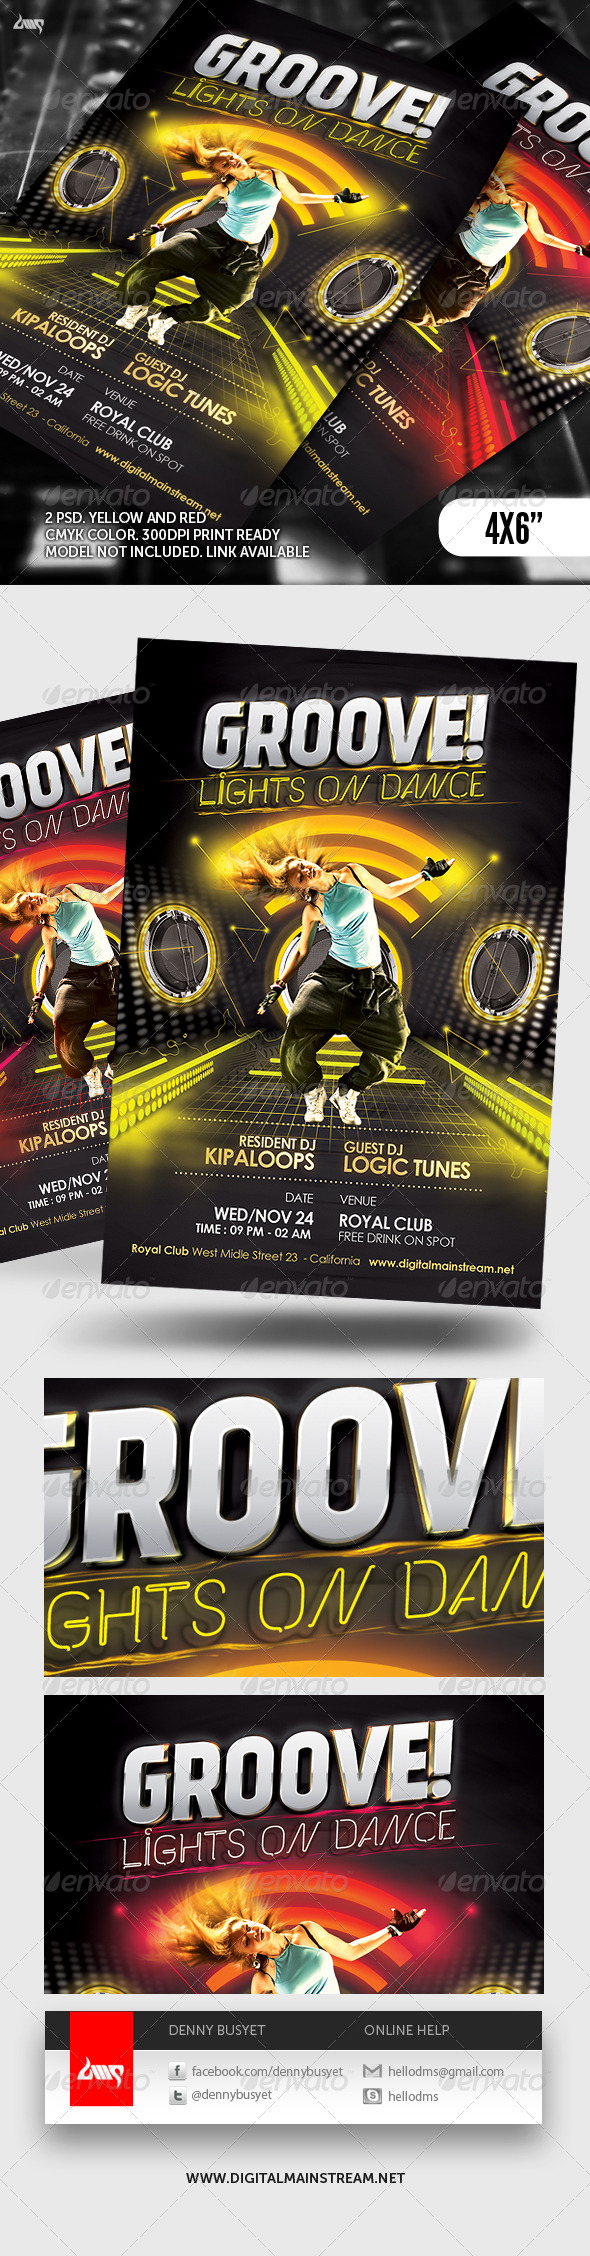 Groove Dance Club Flyer Template - Events Flyers